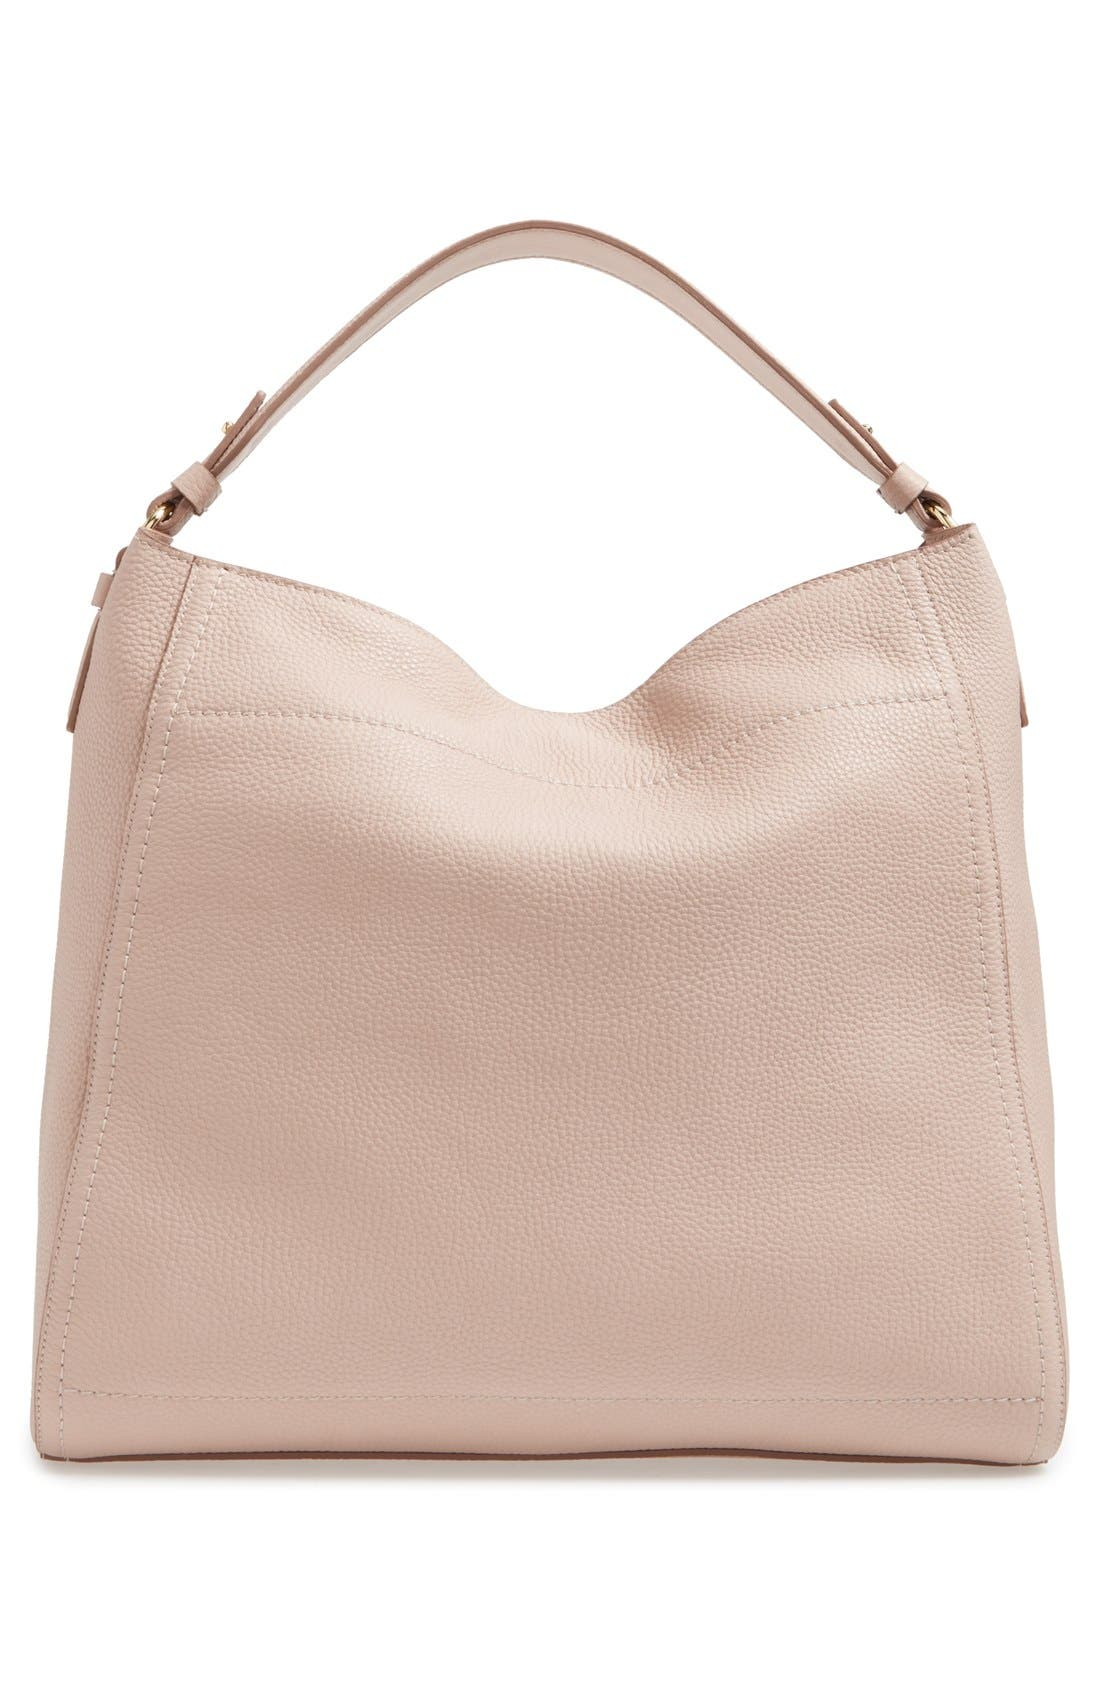 Calfskin Leather Hobo,                             Alternate thumbnail 5, color,                             250